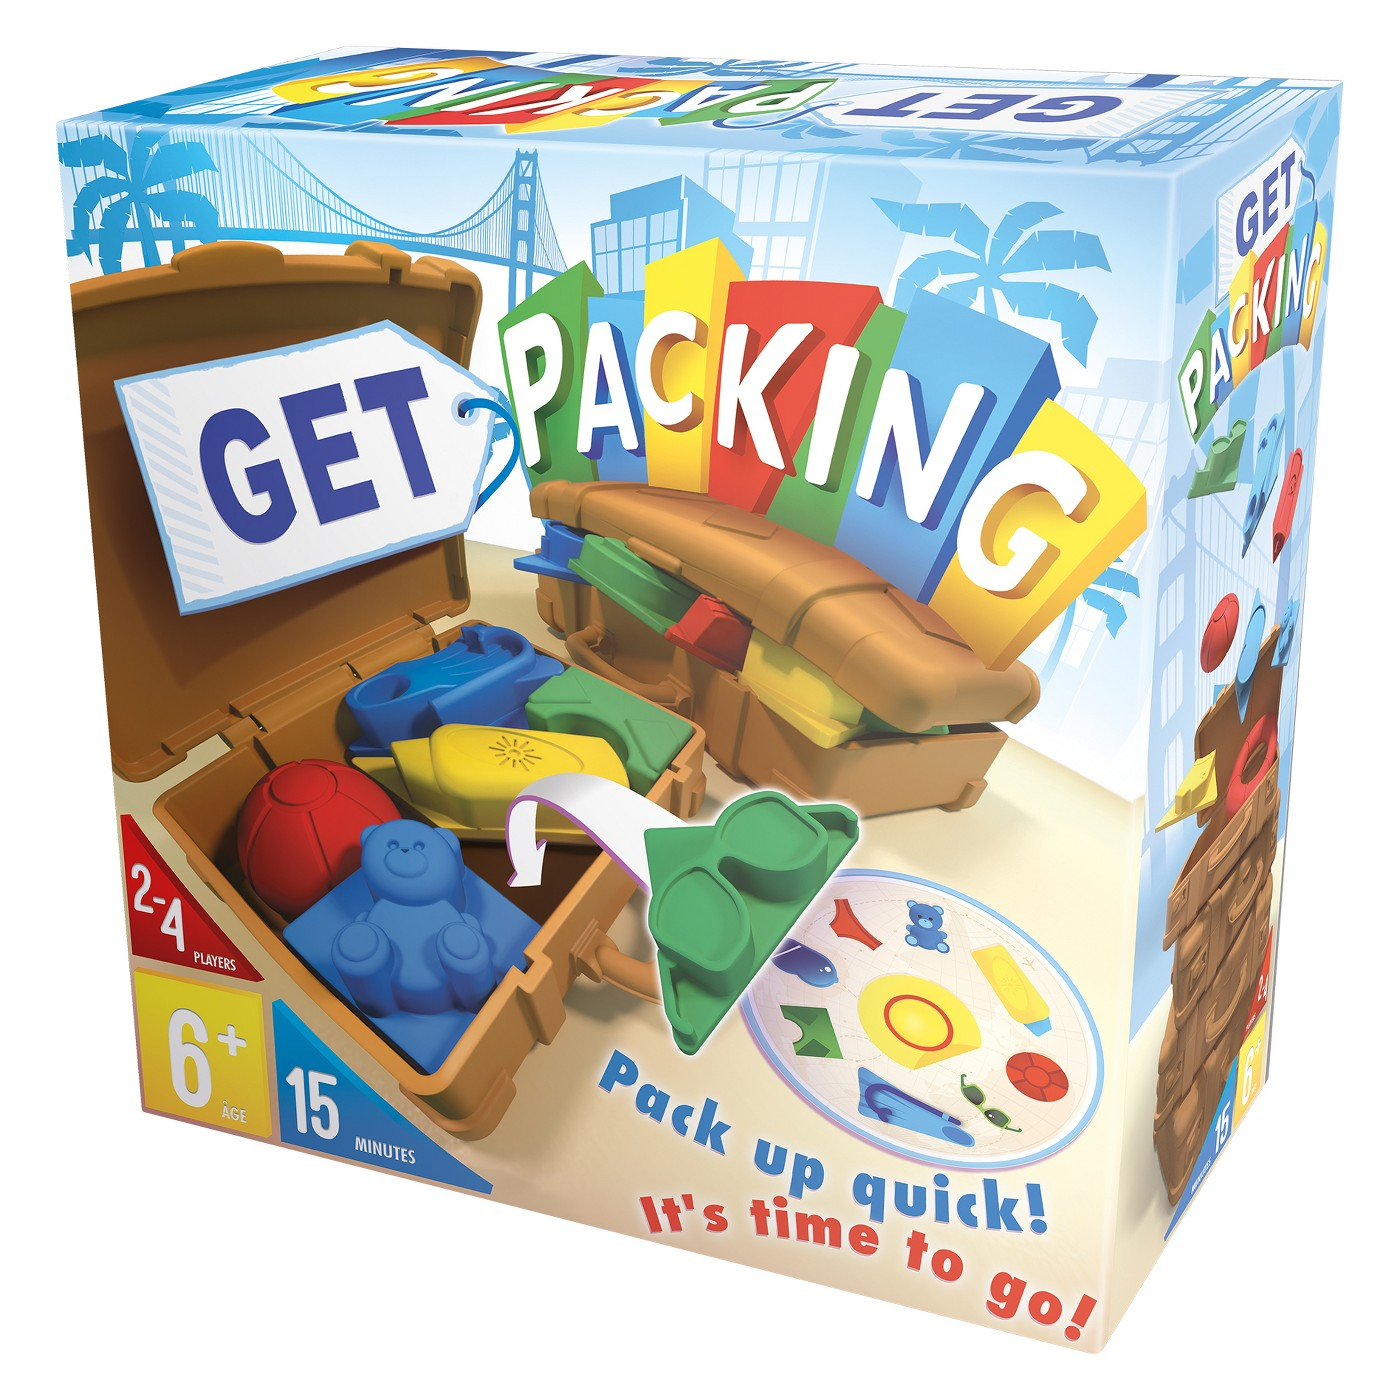 Asmodee - Get Packing Game - image 1 of 3